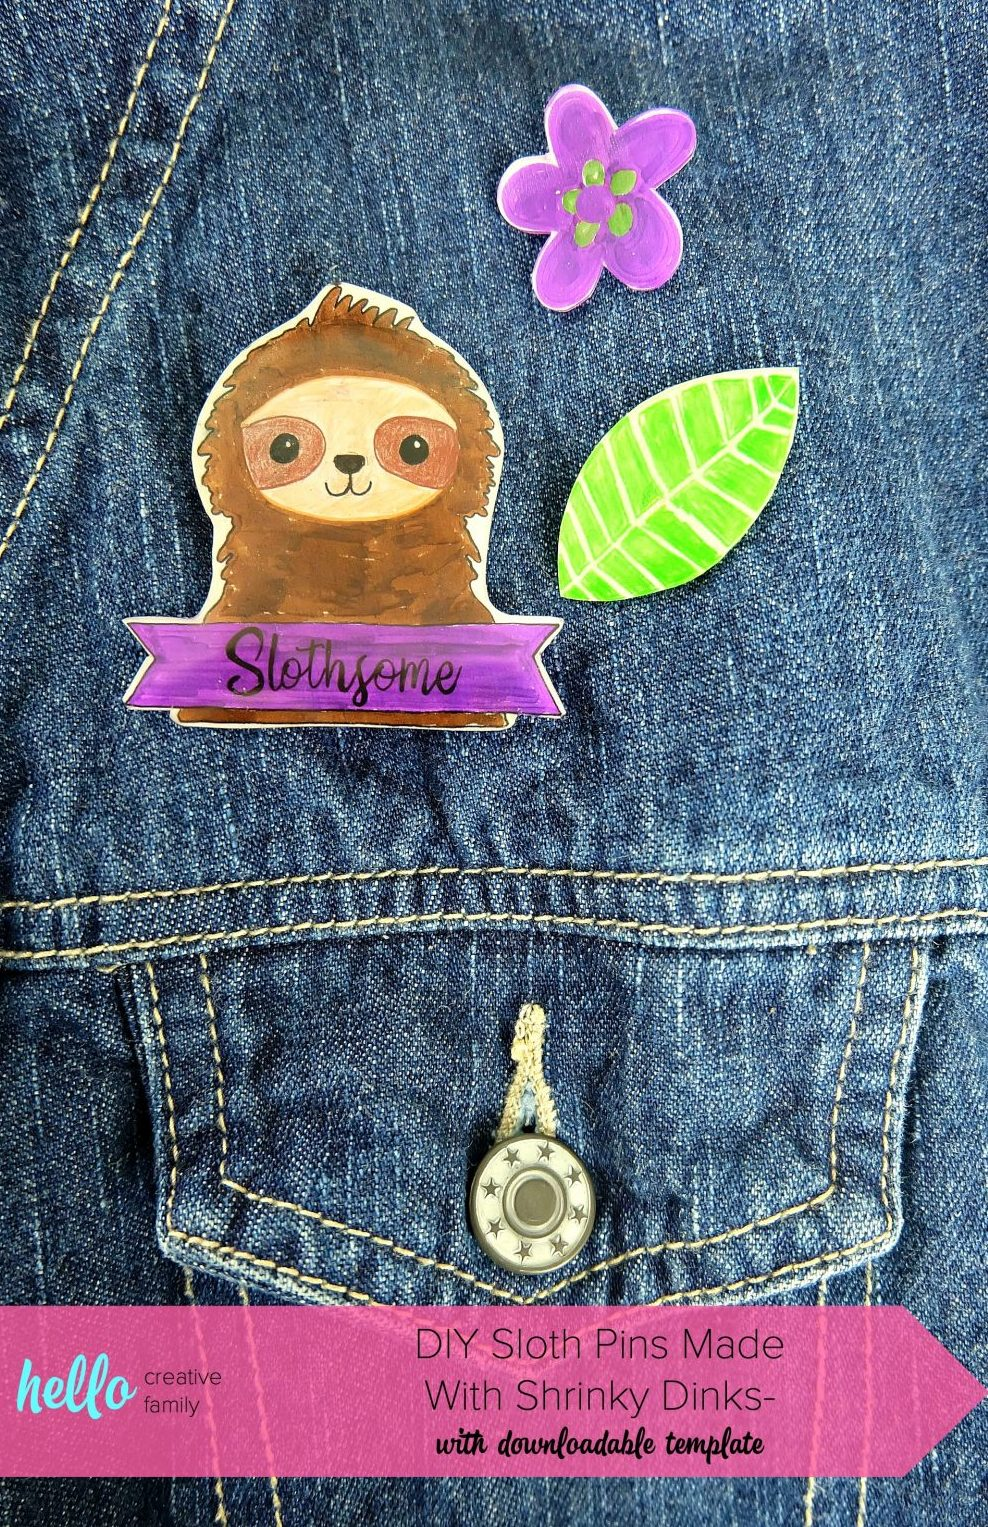 This fun craft will have you feeling nostalgic for the 80's! Learn how to make DIY Sloth Pins using Shrinky Dinks! Includes a free template for the sloth, flowers and leaves along with step by step photos and instructions! A super fun kids crafts that adults will enjoy too! Let's make flare pins! #Crafts #DIY #Sloths #shrinkydinks